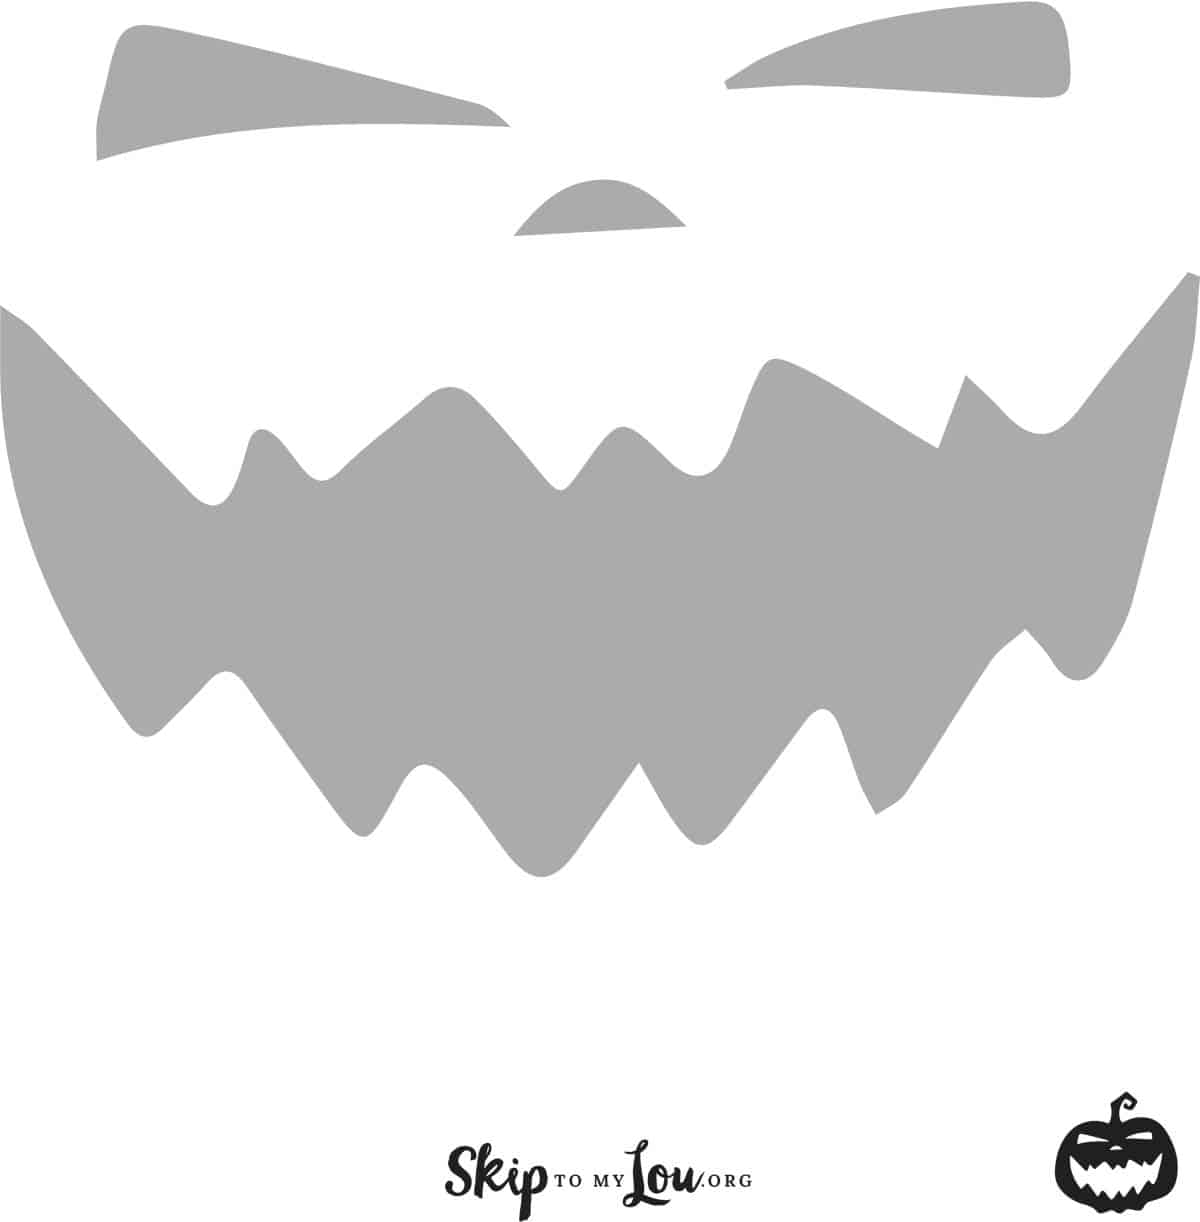 photograph about Printable Pumpkin Pictures called Great Free of charge printable pumpkin carving stencils - Miss out on toward my Lou